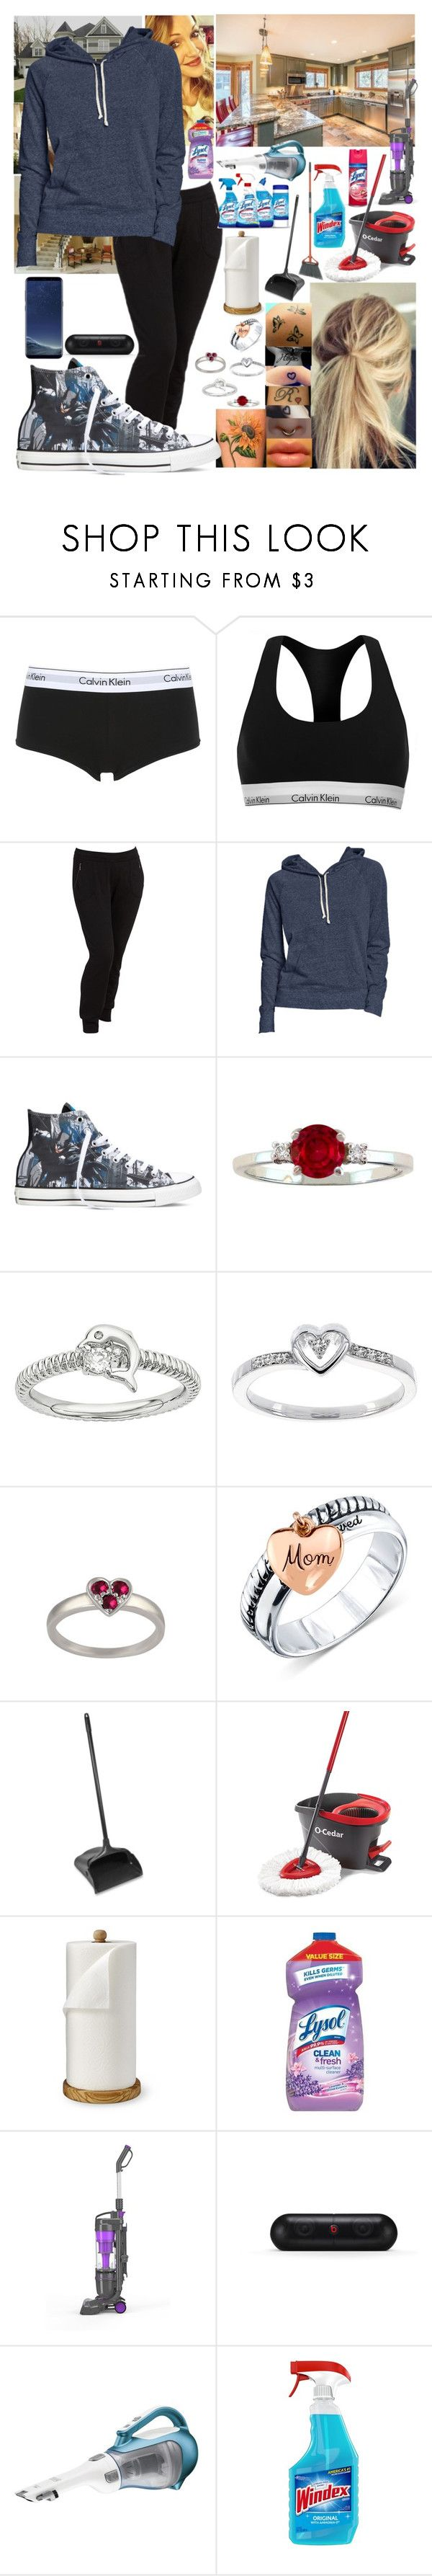 """""""Cleaning the house"""" by spidey31 ❤ liked on Polyvore featuring Calvin Klein Underwear, Calvin Klein, Old Navy, Converse, Modern Bride, Unwritten, Rubbermaid, Williams-Sonoma, Beats by Dr. Dre and Samsung"""